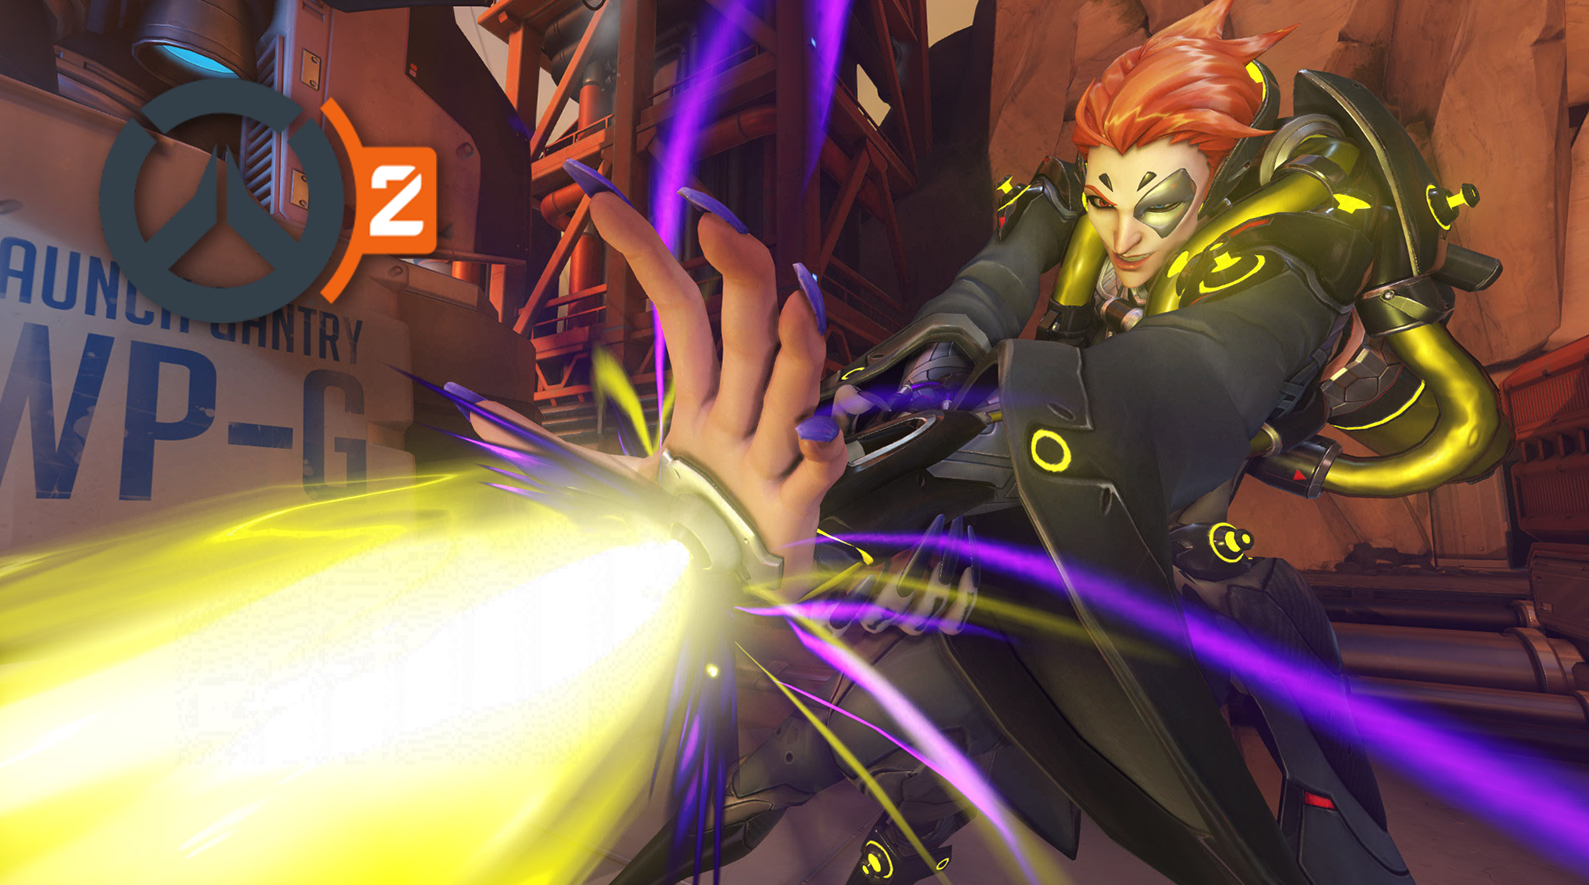 Moira Overwatch casting her Ultimate ability